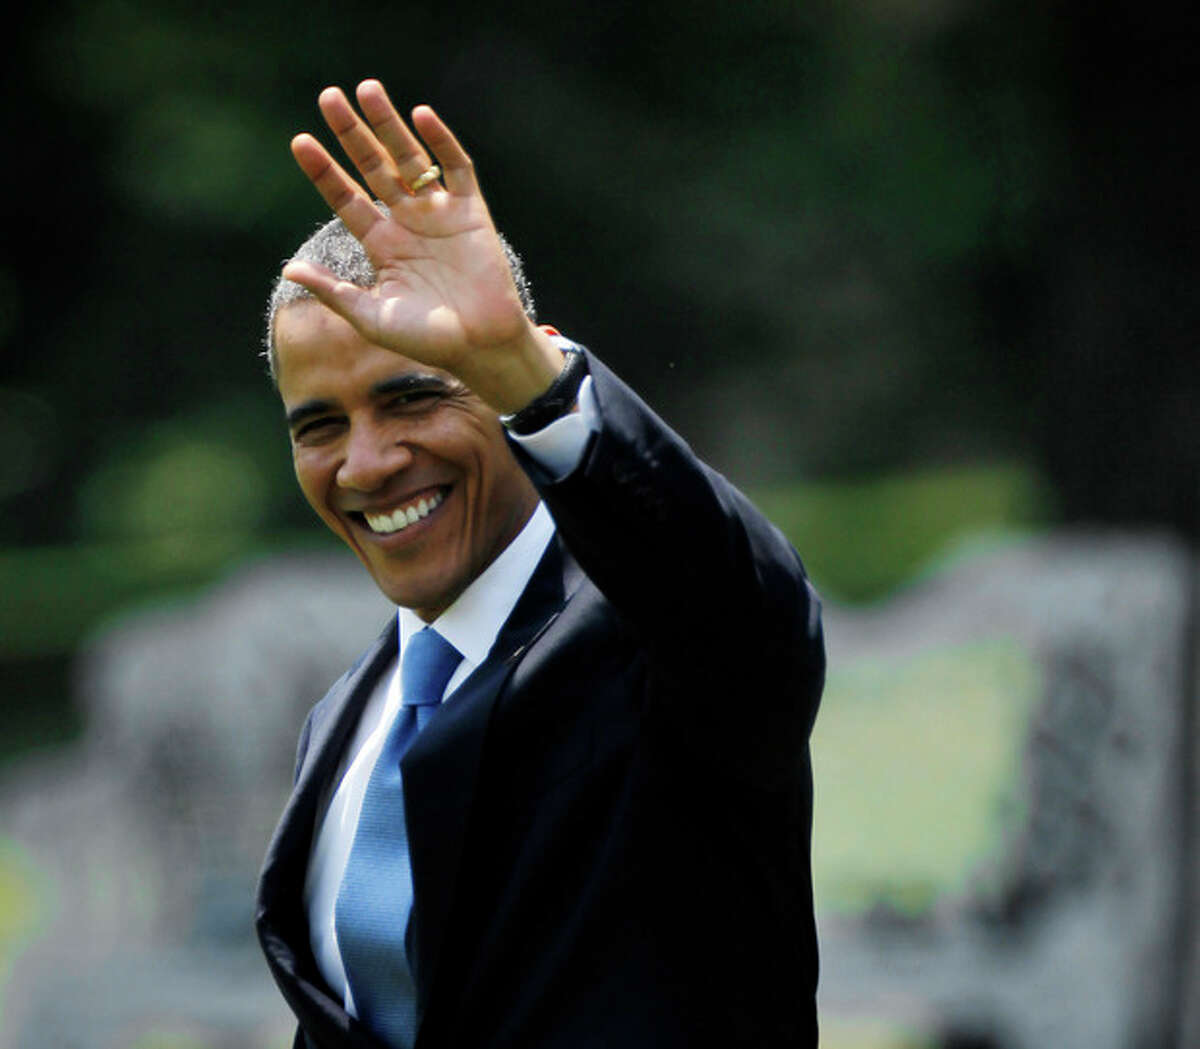 President Barack Obama waves as he walks across the South Lawn of the White House in Washington, Thursday, June 28, 2012, before boarding the Marine One helicopter. Obama was traveling to Walter Reed National Medical Center in Bethesda, Md., to visit with members of the military. (AP Photo/Pablo Martinez Monsivais)